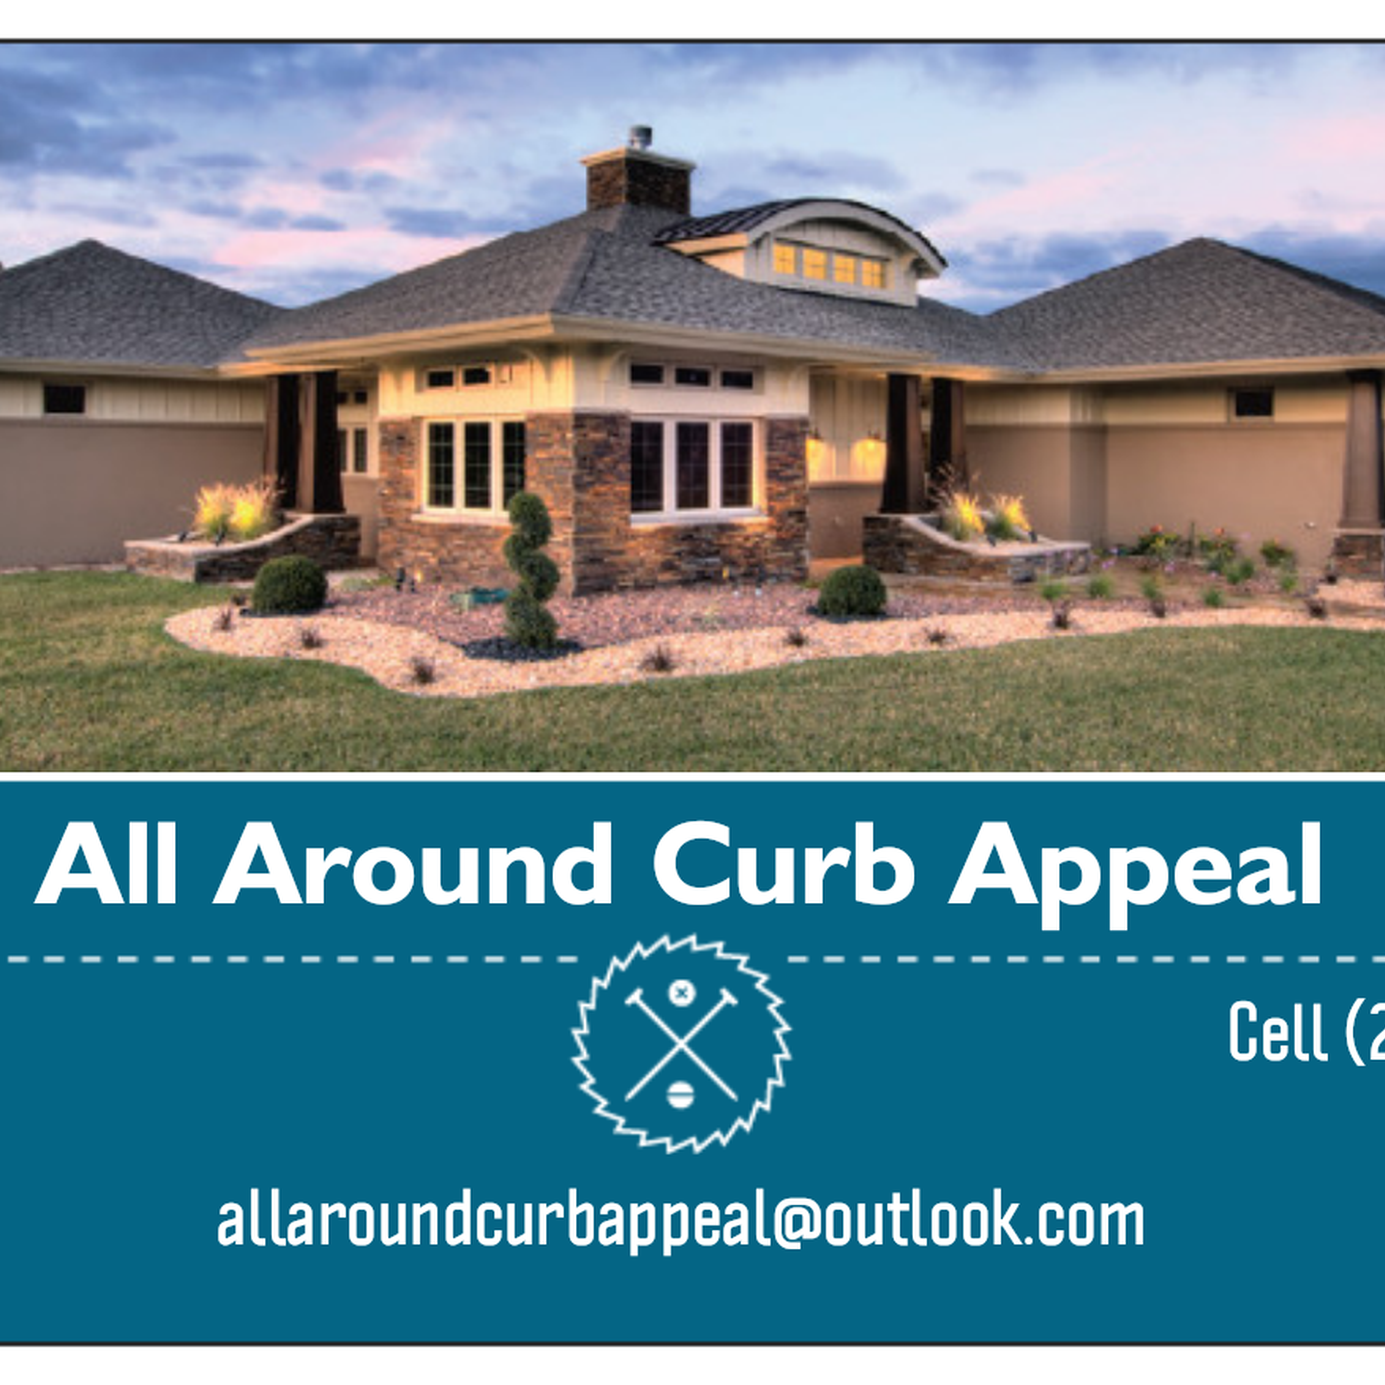 All Around Curb Appeal logo